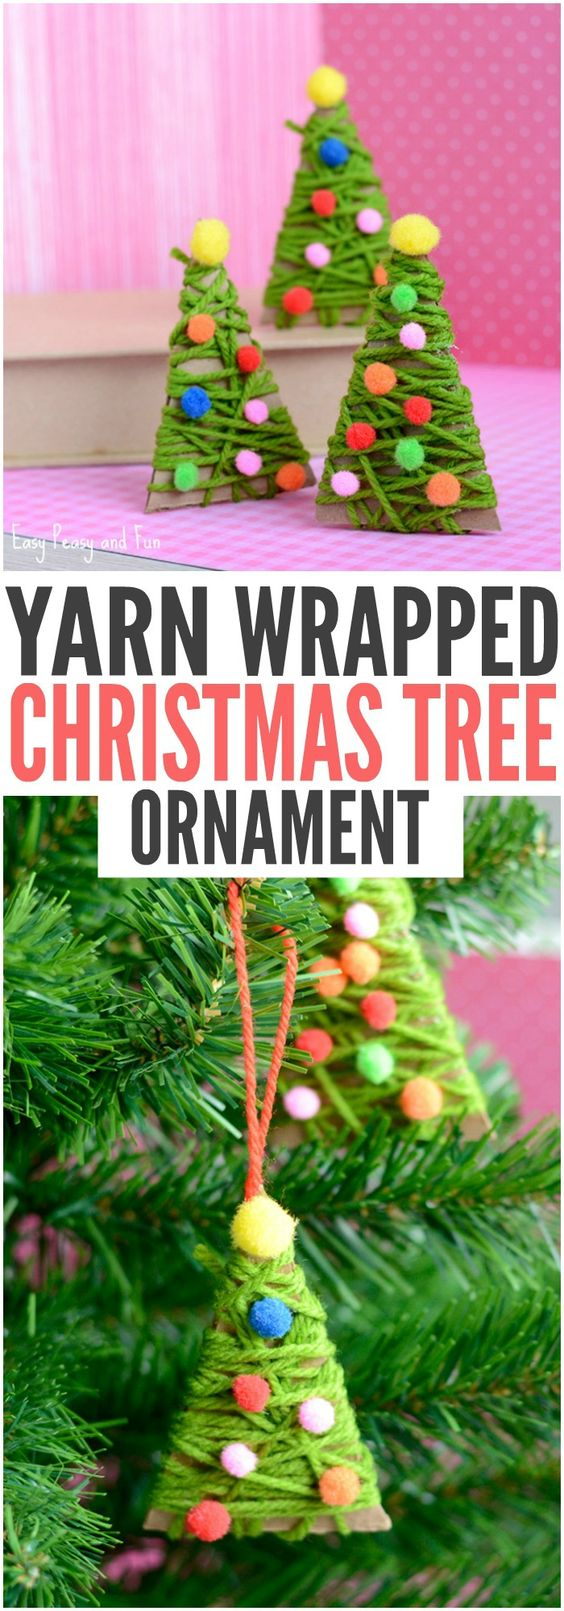 DIY Yarn Wrapped Christmas Tree Ornament - Christmas Ornaments for Kids to Make: